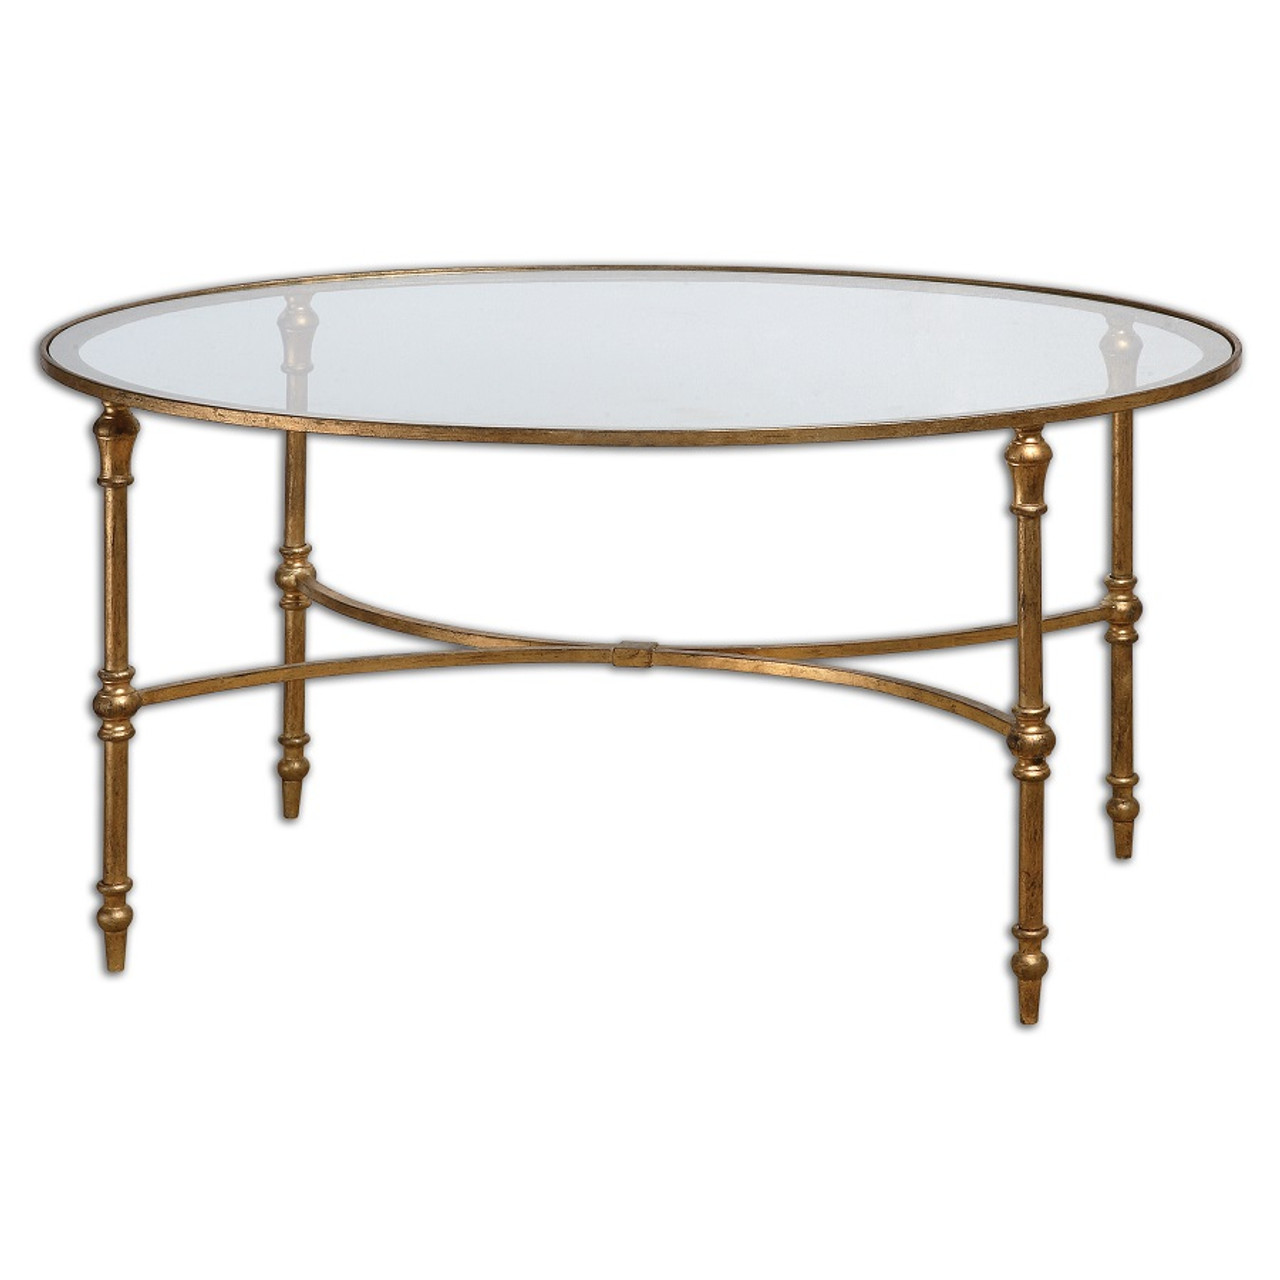 should glass willtofly com table oval you choose with reasons top some tables coffee why